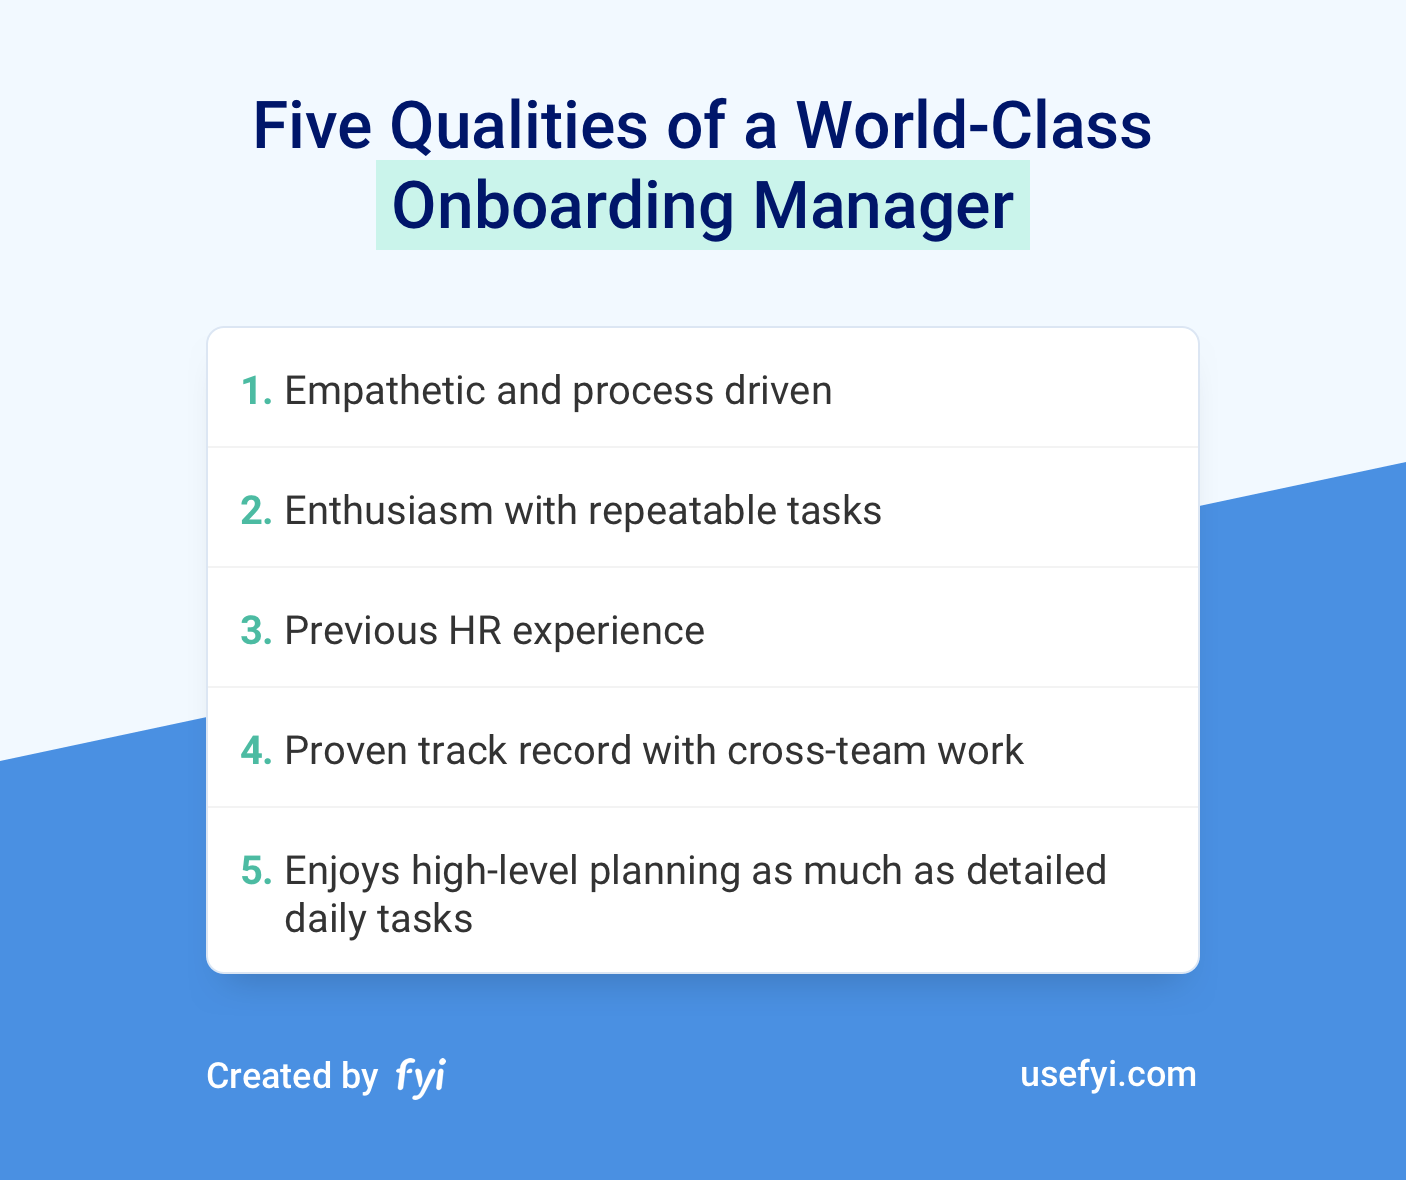 World-class Onboarding Manager Qualities